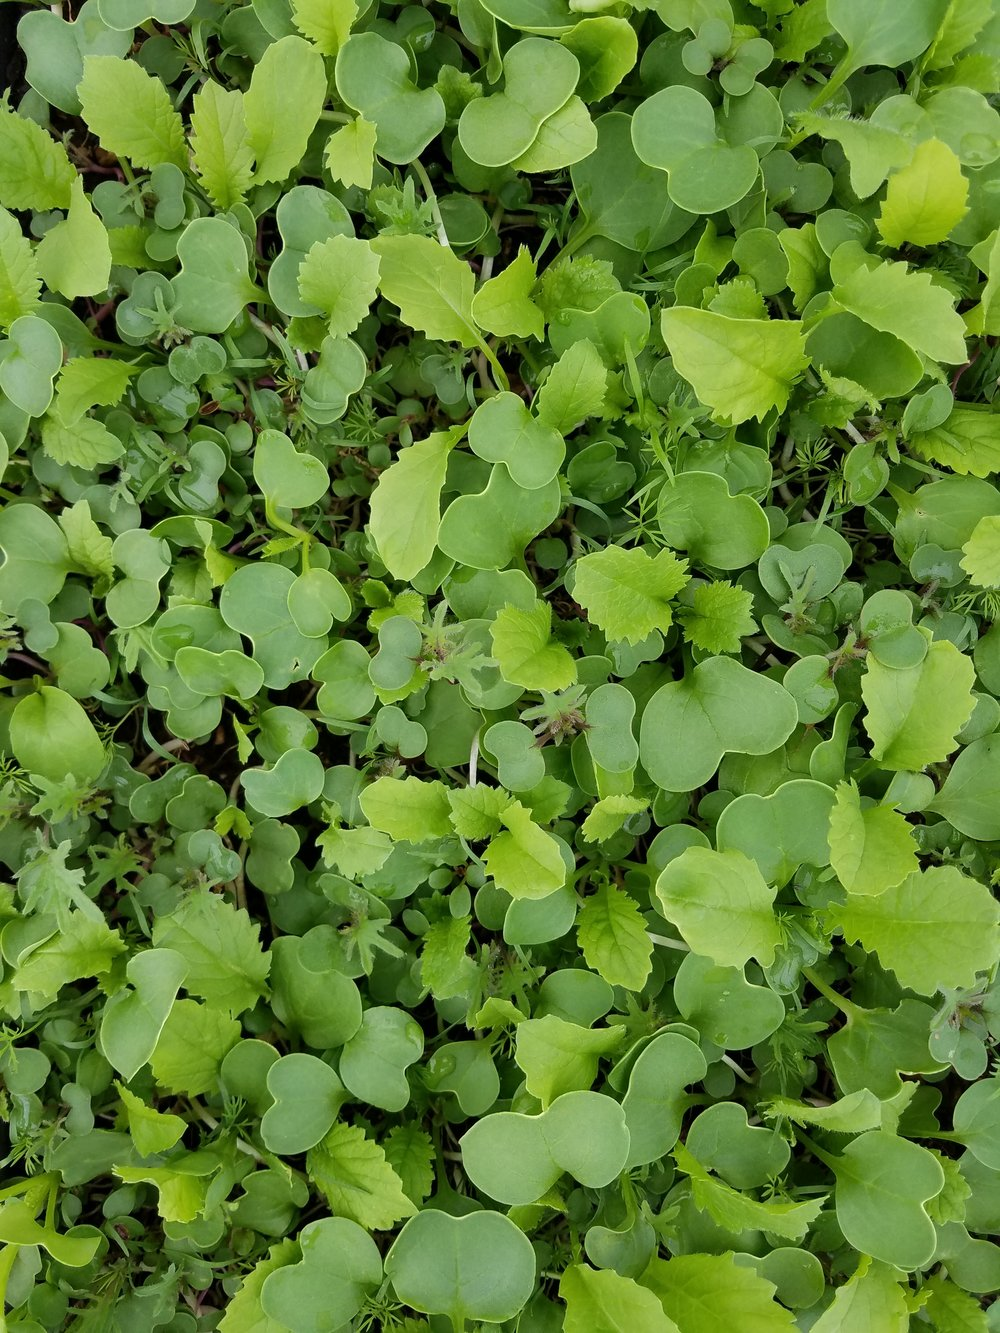 Microgreens -  A mix of baby greens and herbs harvested while still young and tender. A mix of  flavors makes them great as sandwich toppers, perfect on eggs, or tossed in your next salad.